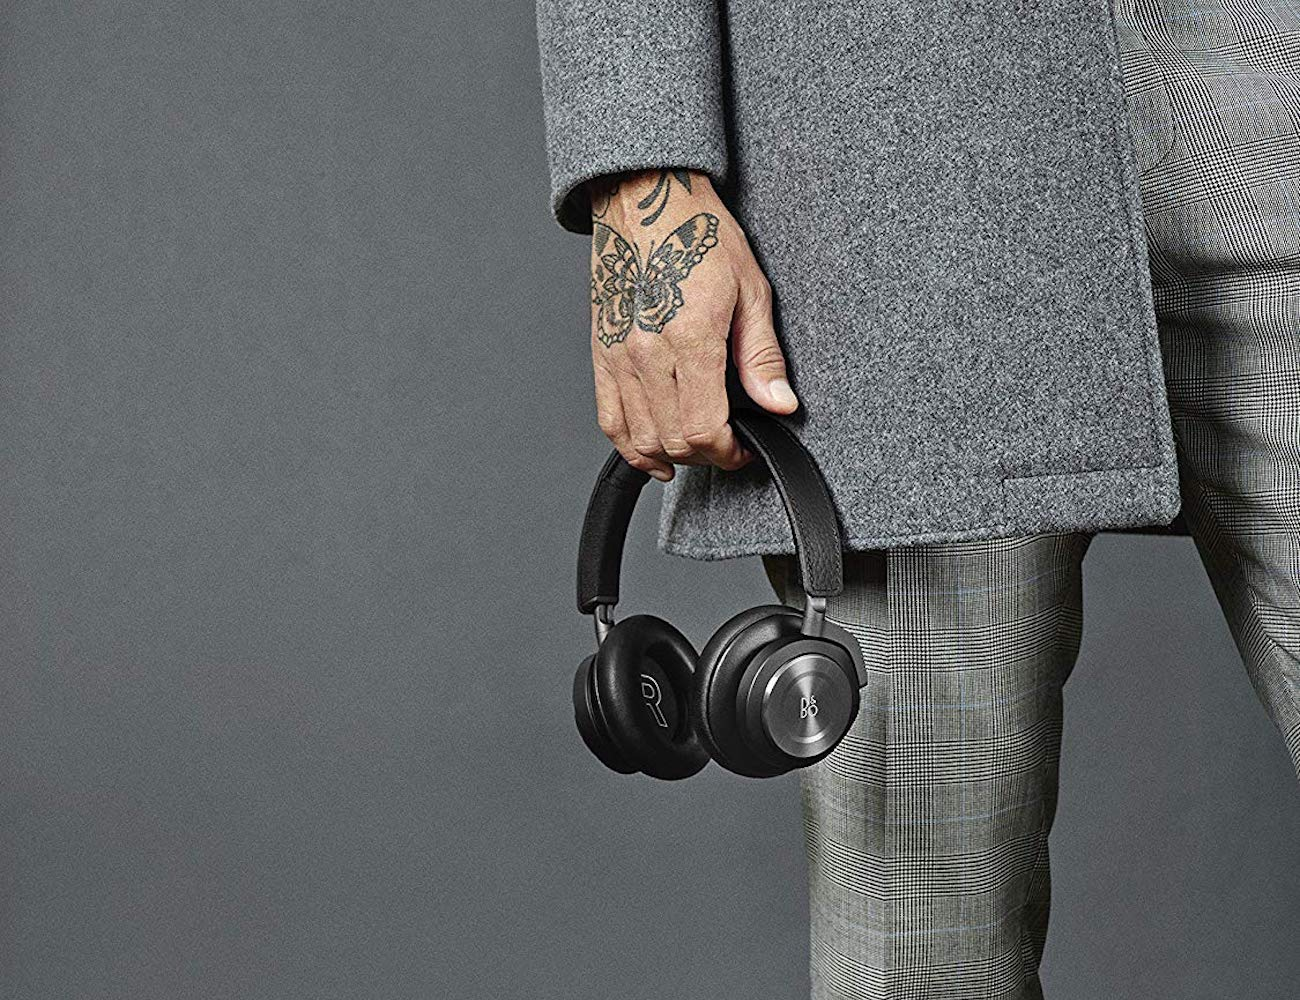 Beoplay H9i ANC Wireless Over-Ear Headphones loading=